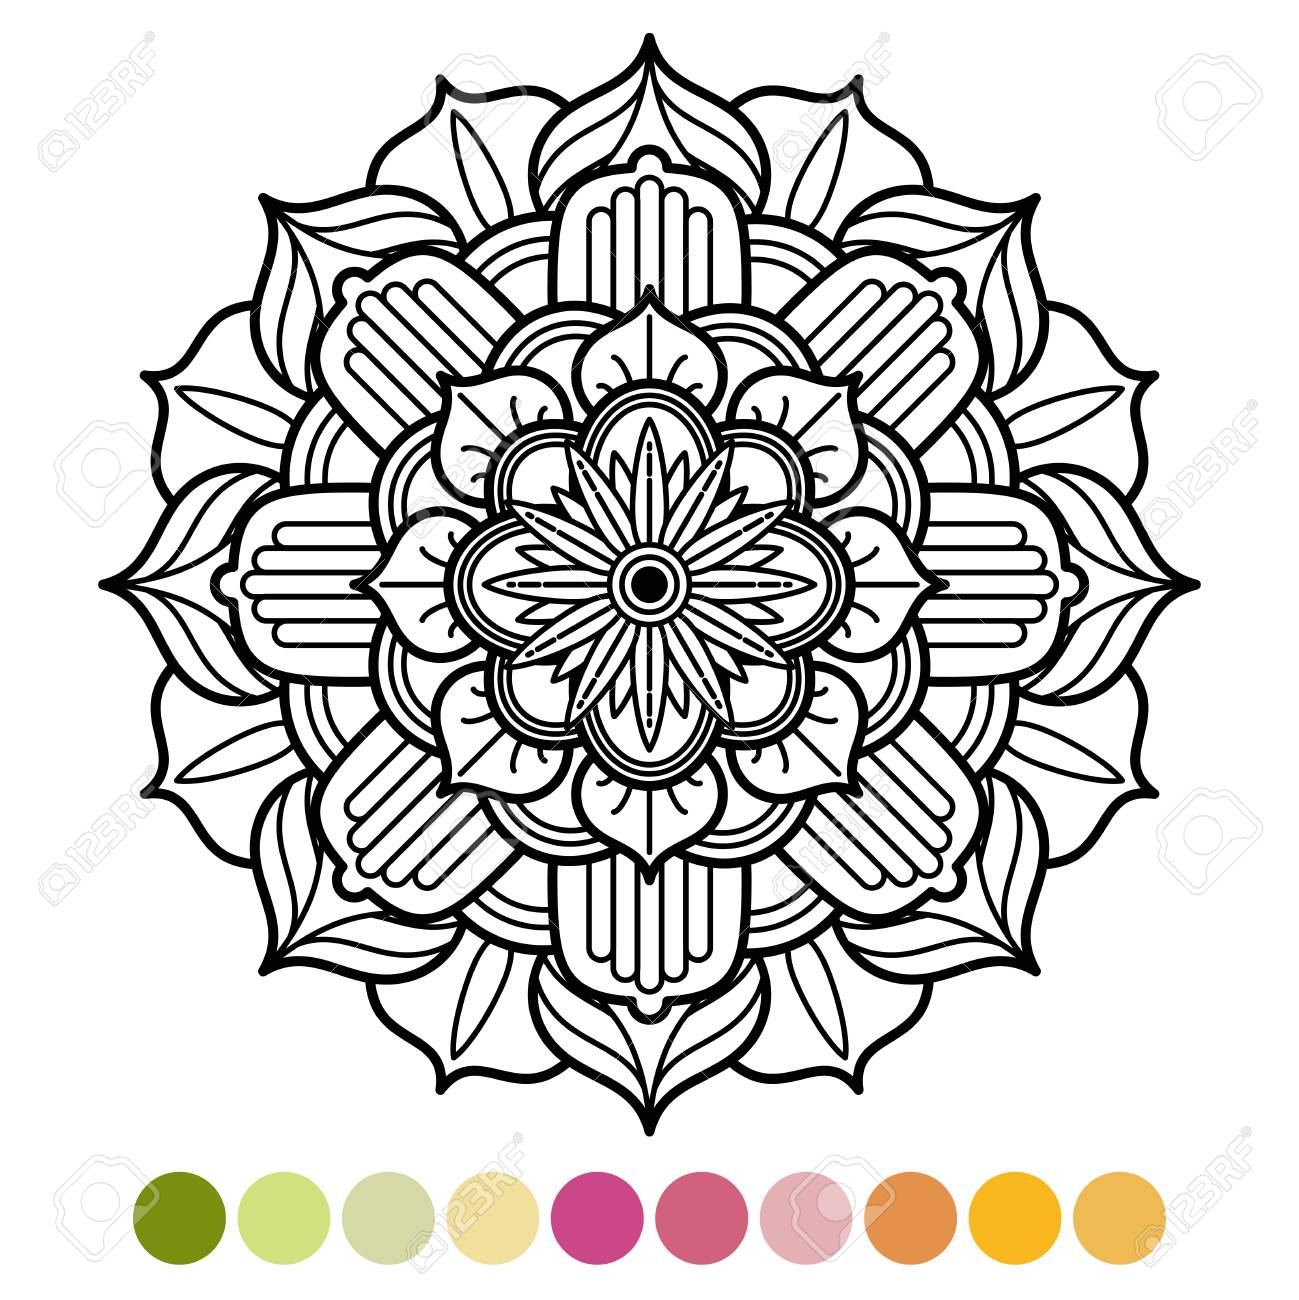 Anti Stress Mandala Coloring Page With Colors Sample Stock Vector